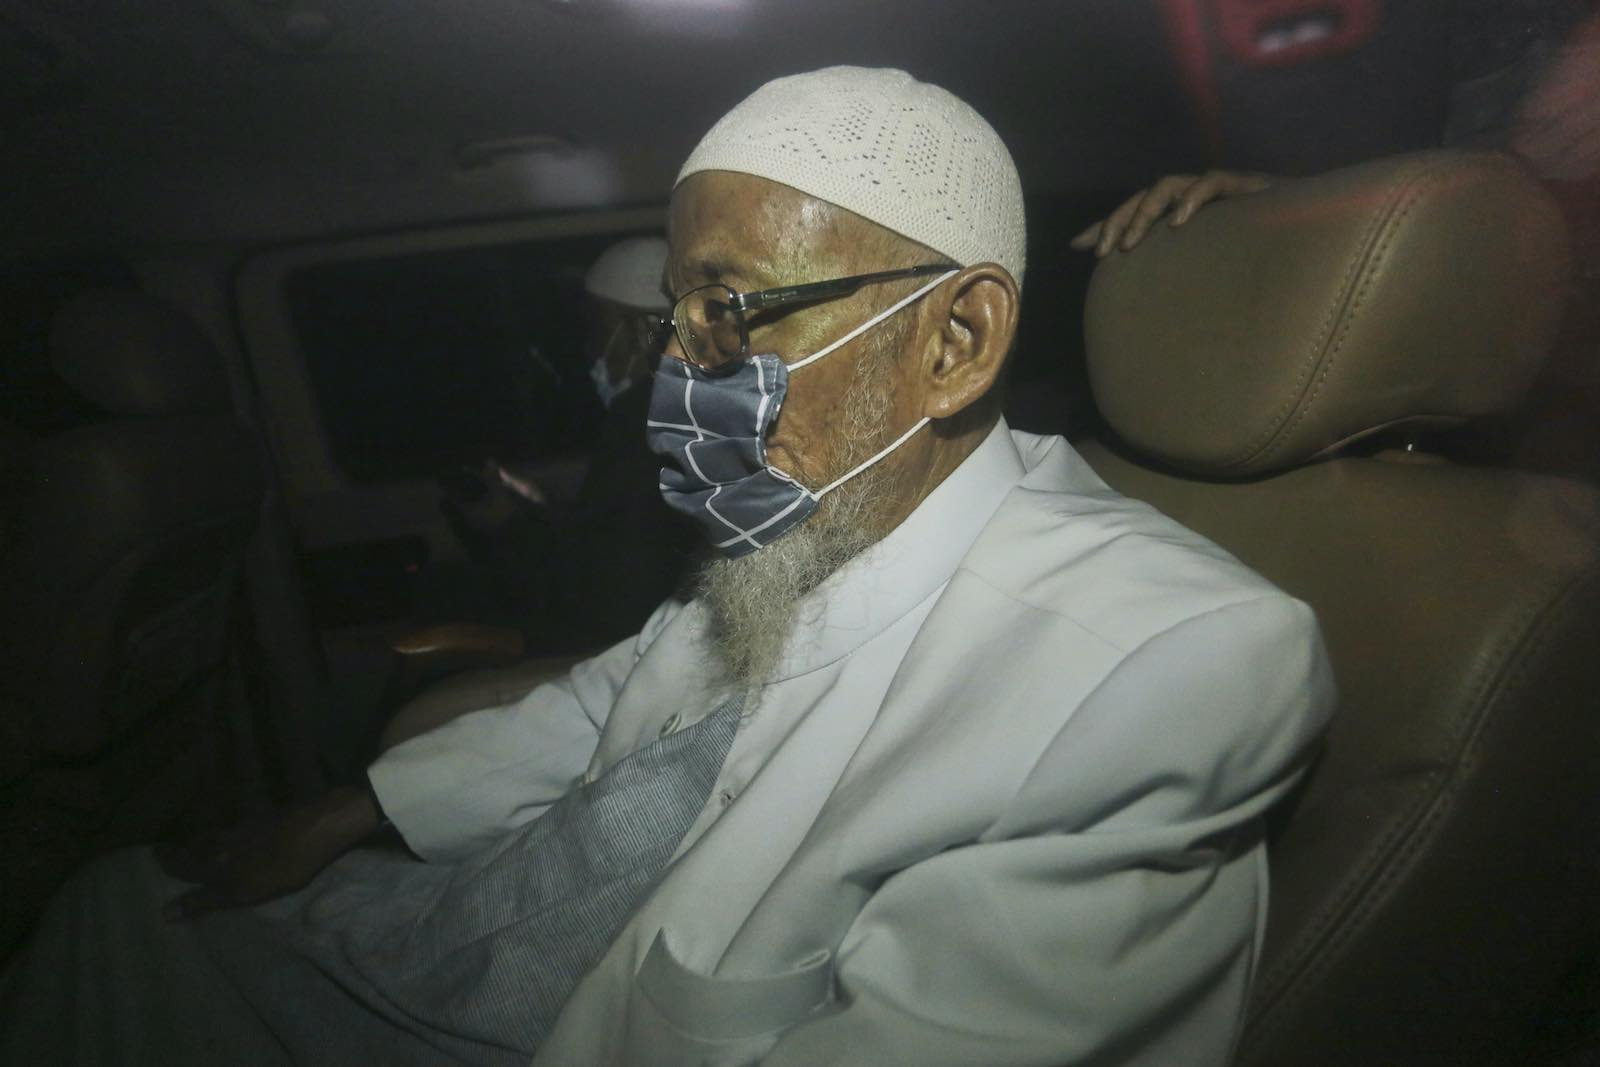 Abu Bakar Bashir is driven away from prison after his release on 8 January 2021 in Bogor, Indonesia (Photo by Getty Images)